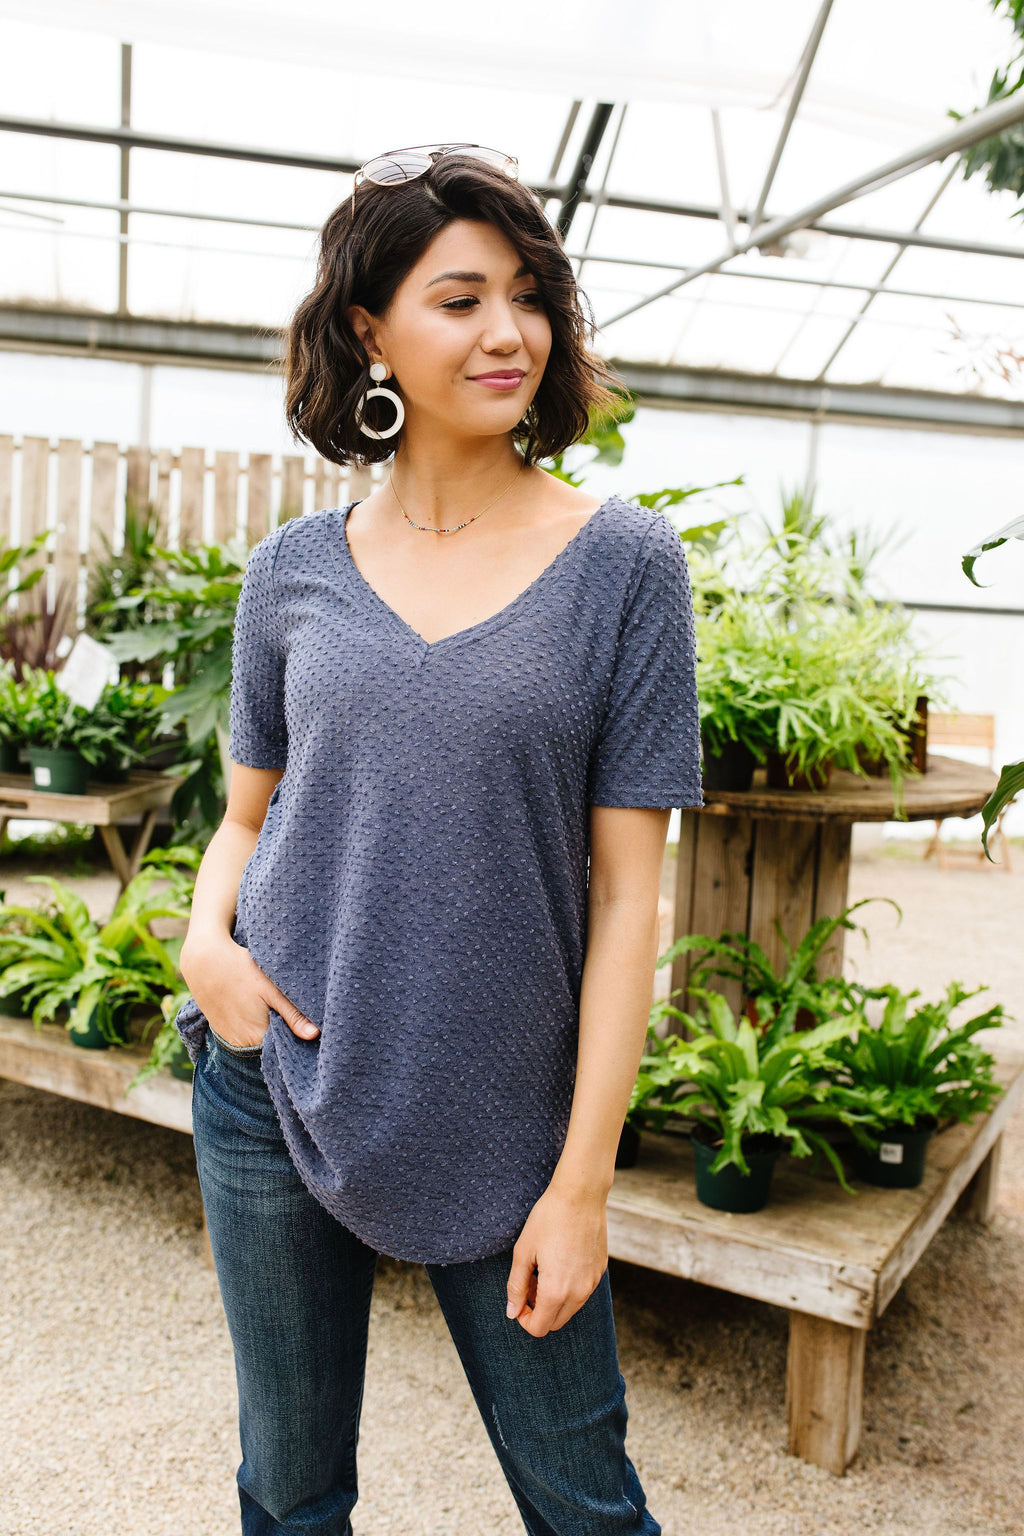 Swiss Dot V-Neck In Slate-5-14-2020, 5-22-2020, Bonus, Group A, Group B, Group C, Large, Medium, Small, Tops-Womens Artisan USA American Made Clothing Accessories